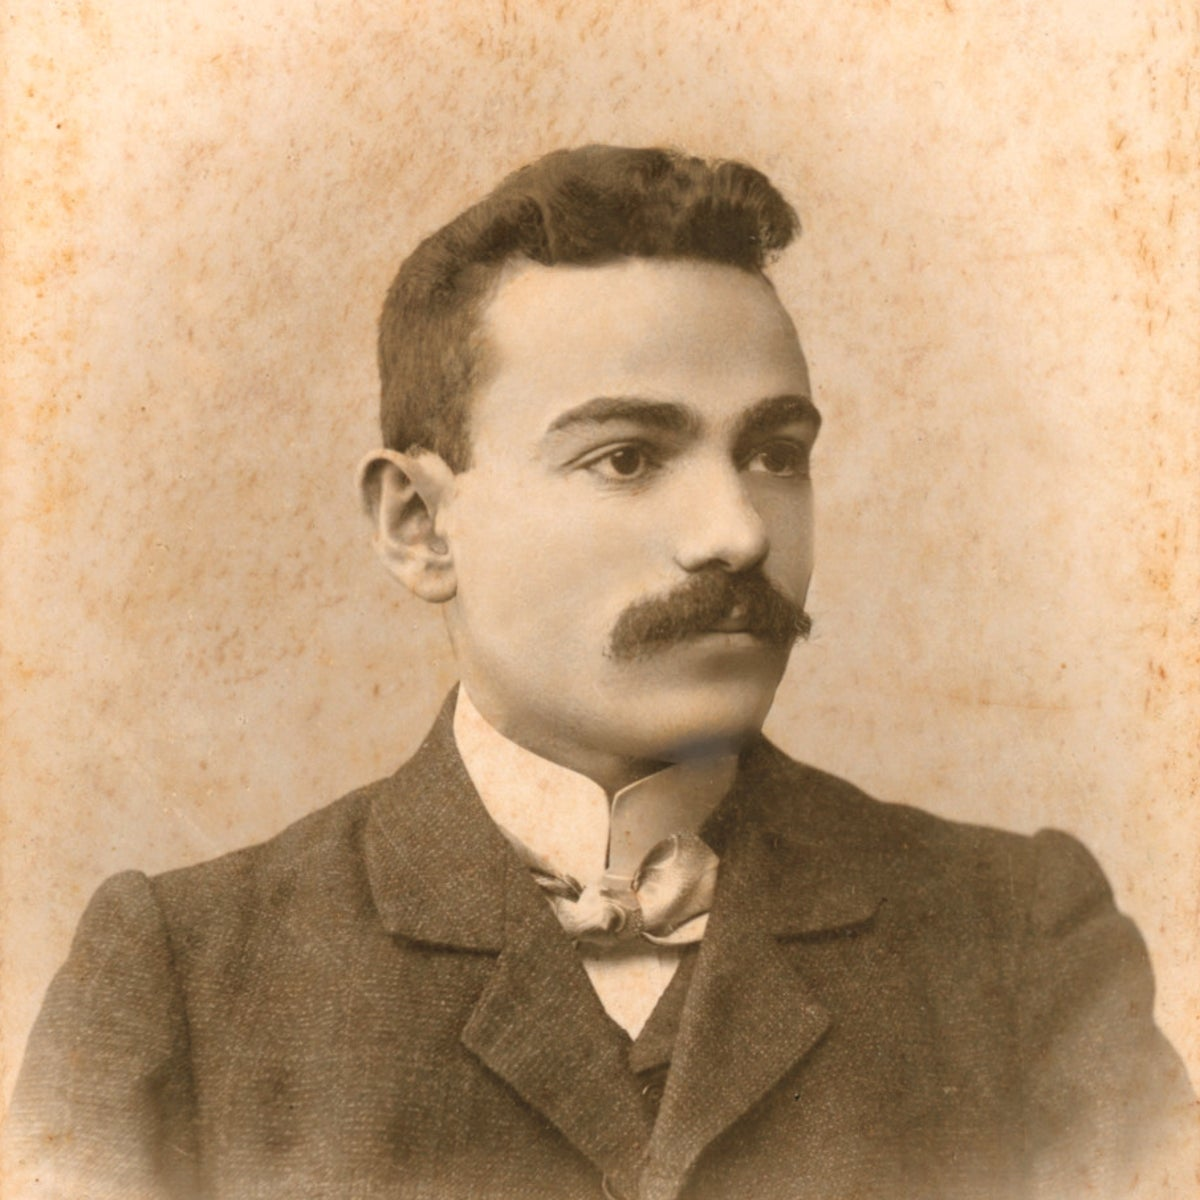 Chaim Bomstein, the Aluf Benn's grandfather. At age 19, he left Osipovichi in Belorussia for Vilna, where he and his cousin's husband joined a journalistic and cultural adventure.